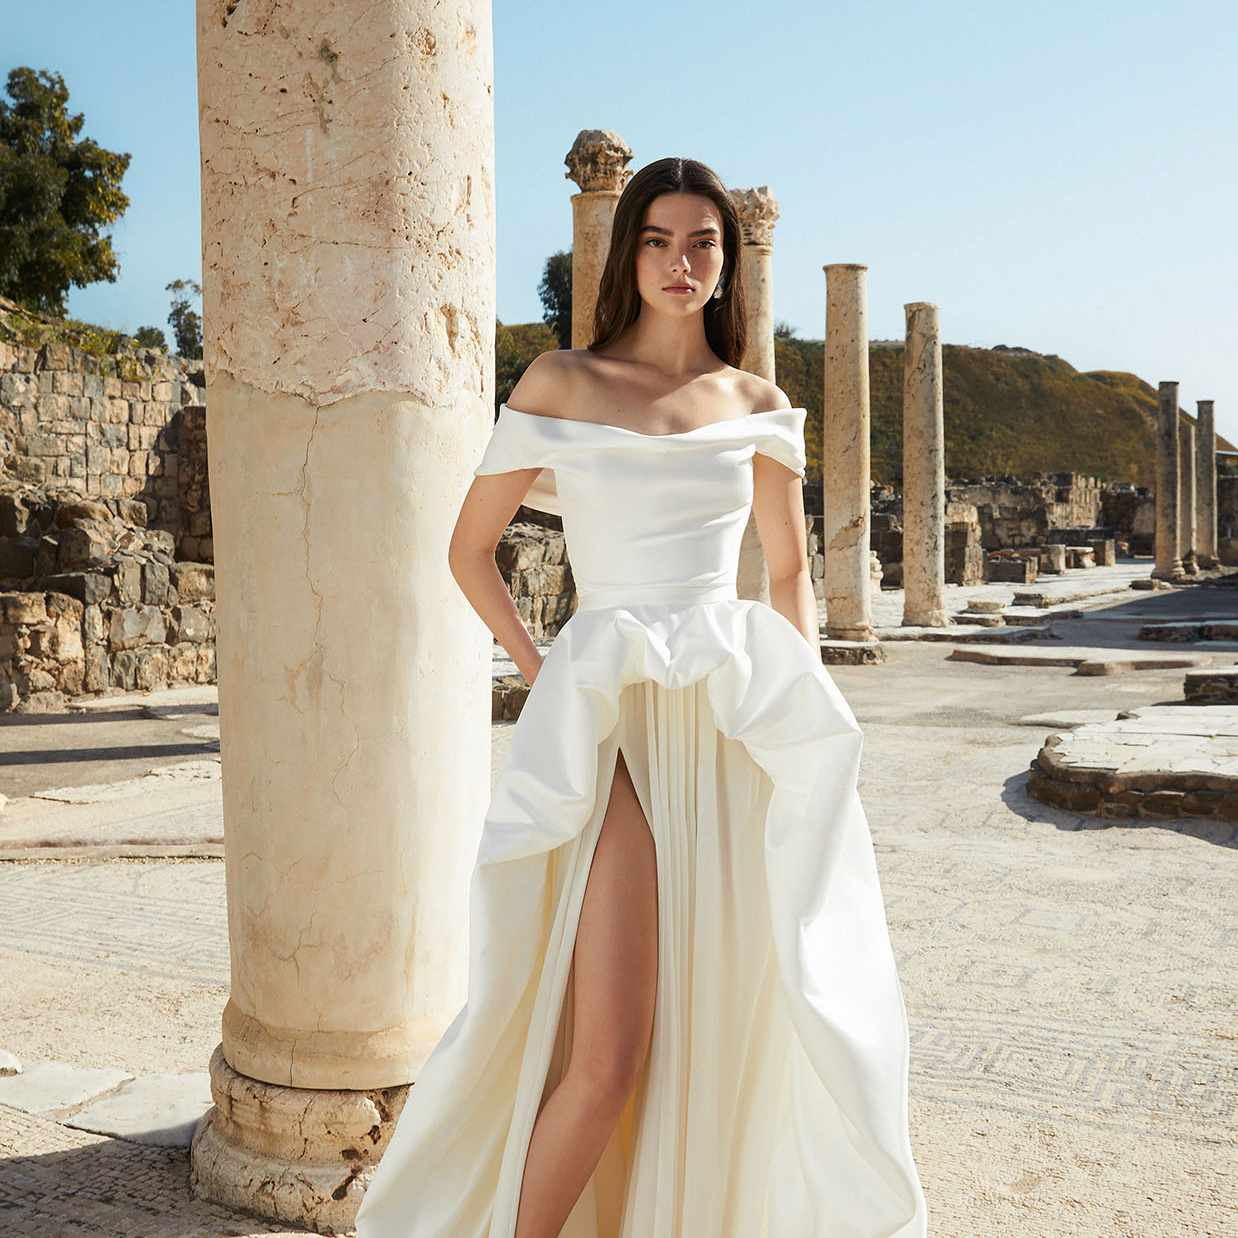 white gown and skirt